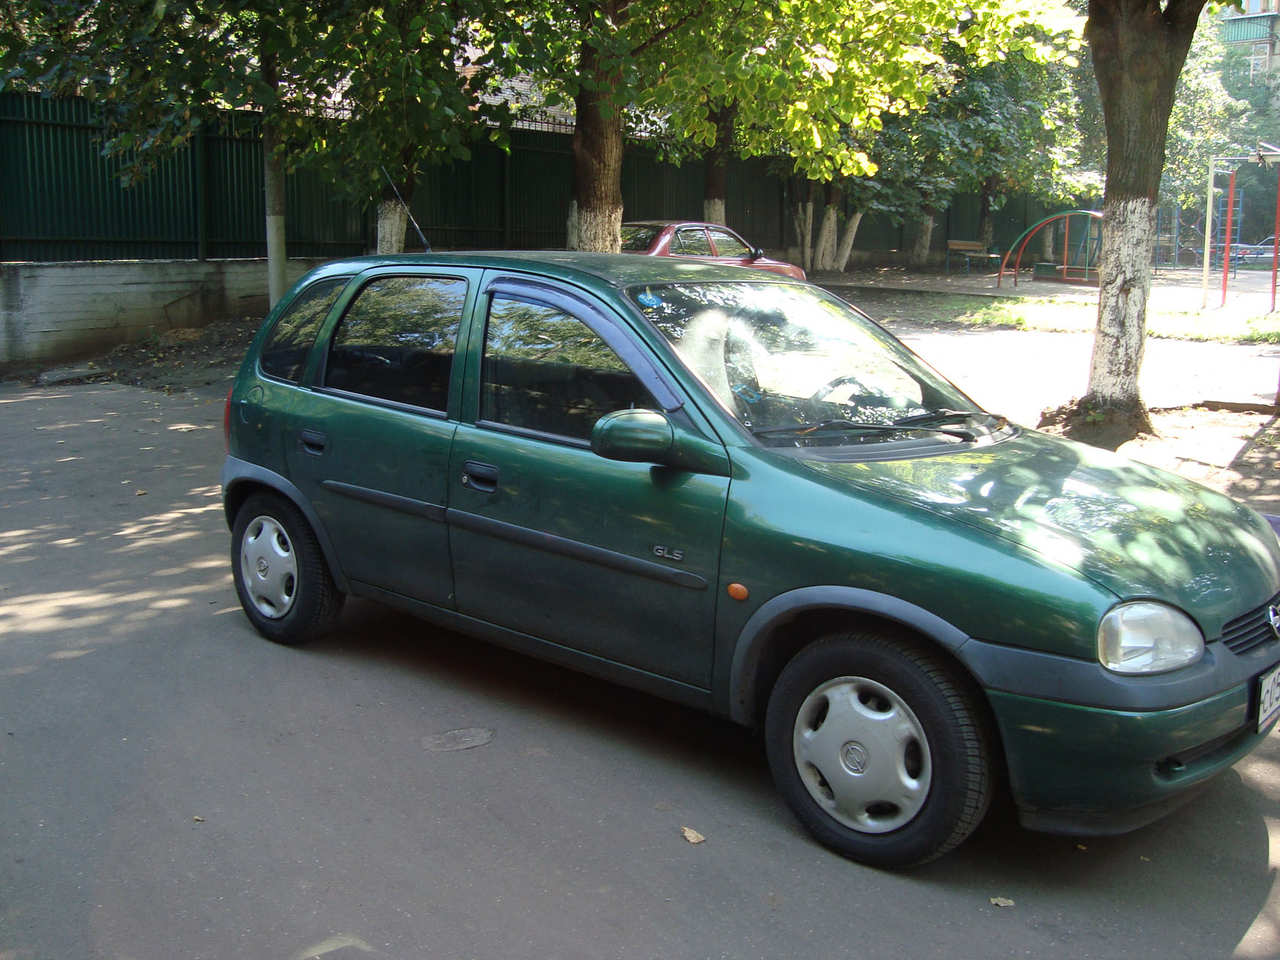 1998 opel corsa photos 1 4 gasoline ff automatic for sale. Black Bedroom Furniture Sets. Home Design Ideas